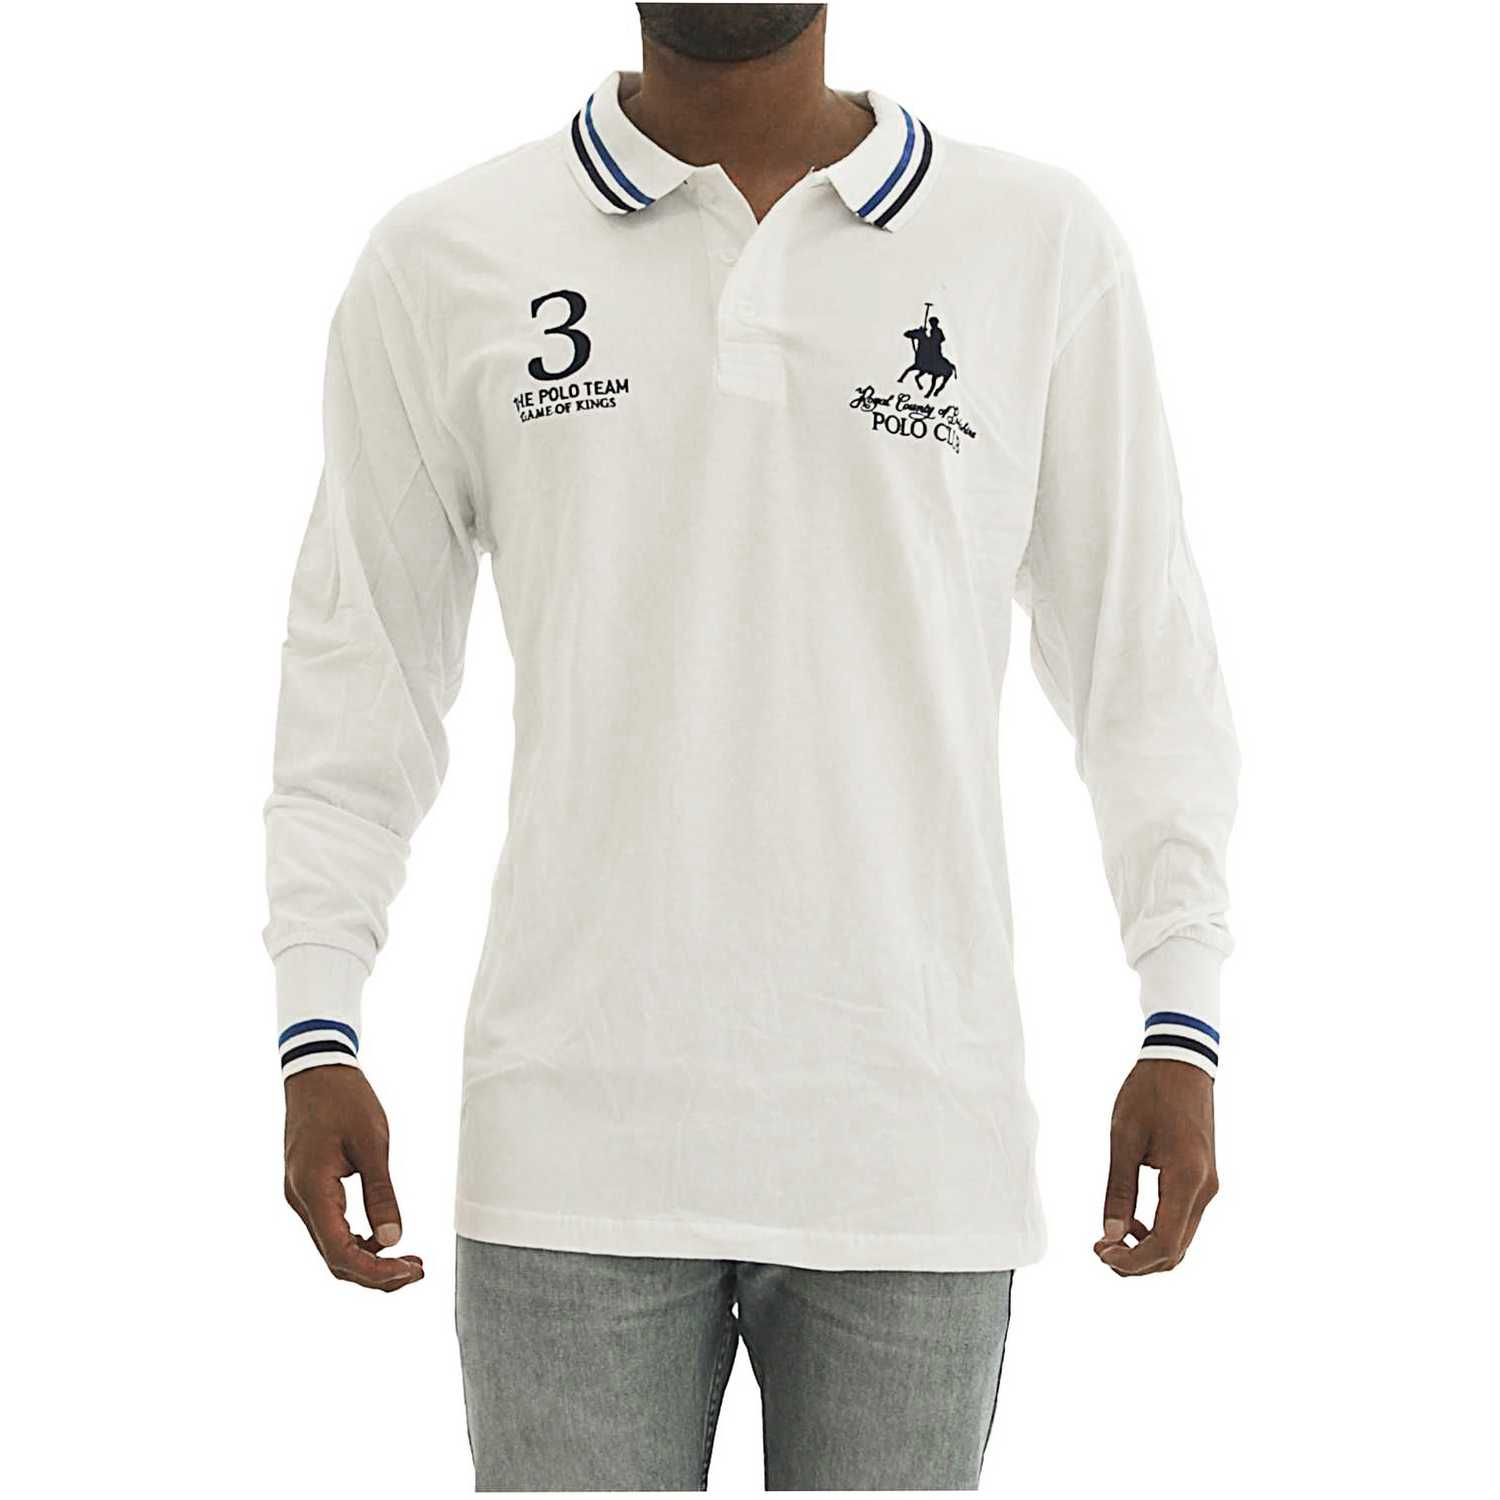 Casual de Hombre BERKSHIRE POLO CLUB Blanco polera-159-1536187